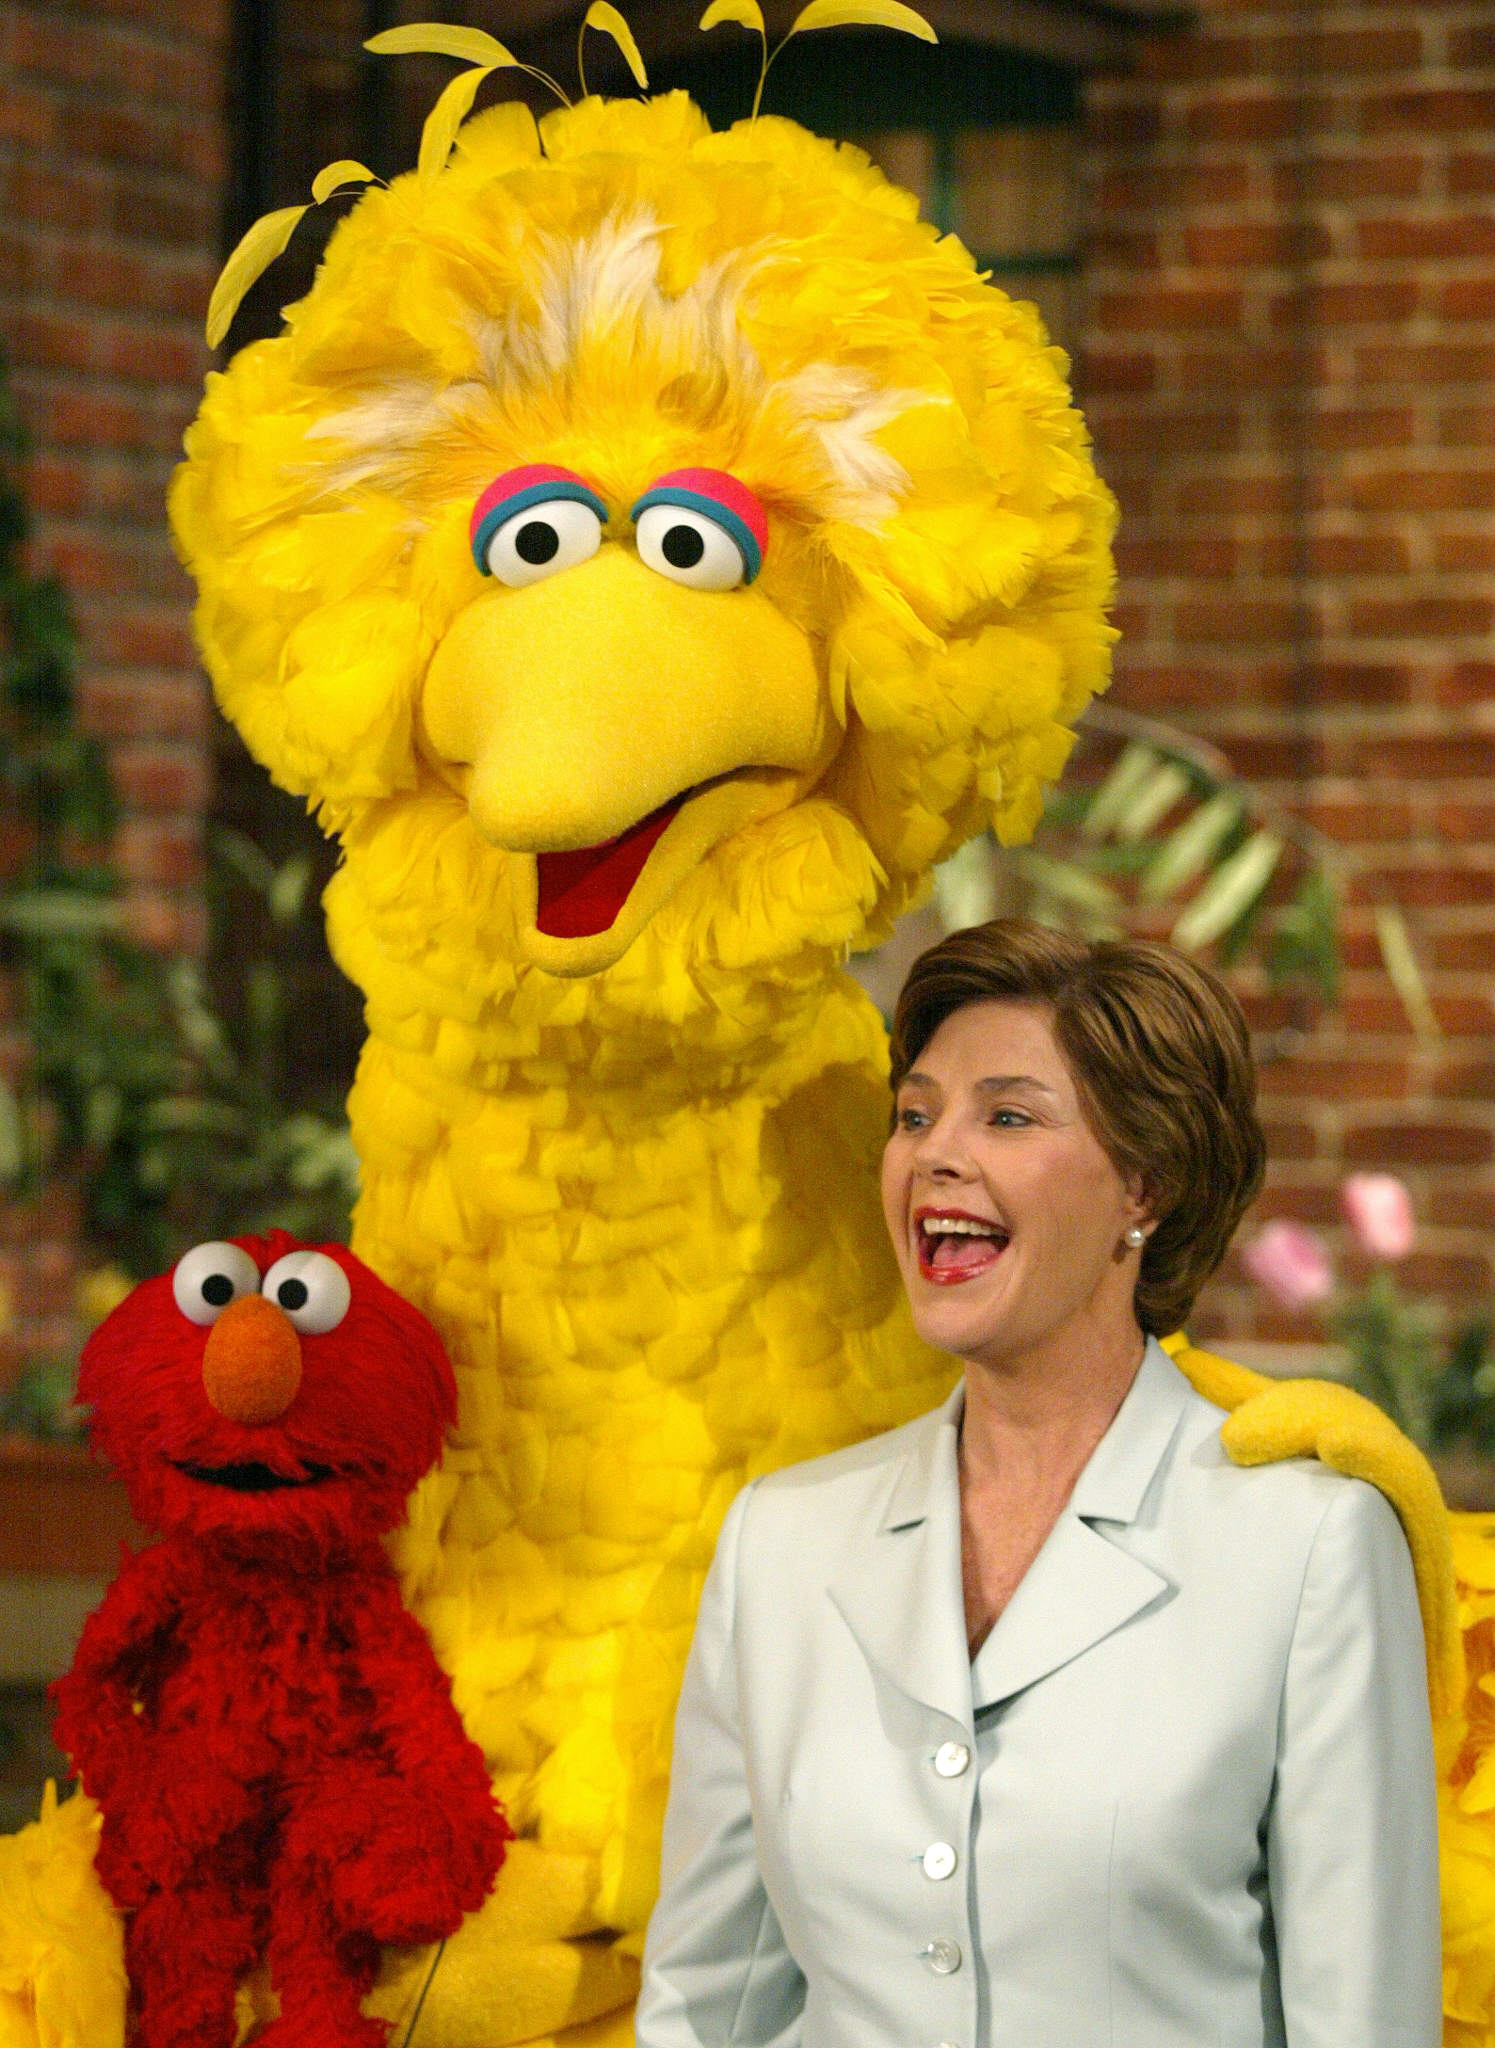 Former first lady Laura Bush with Big Bird and Elmo on Sesame Street, 2002.